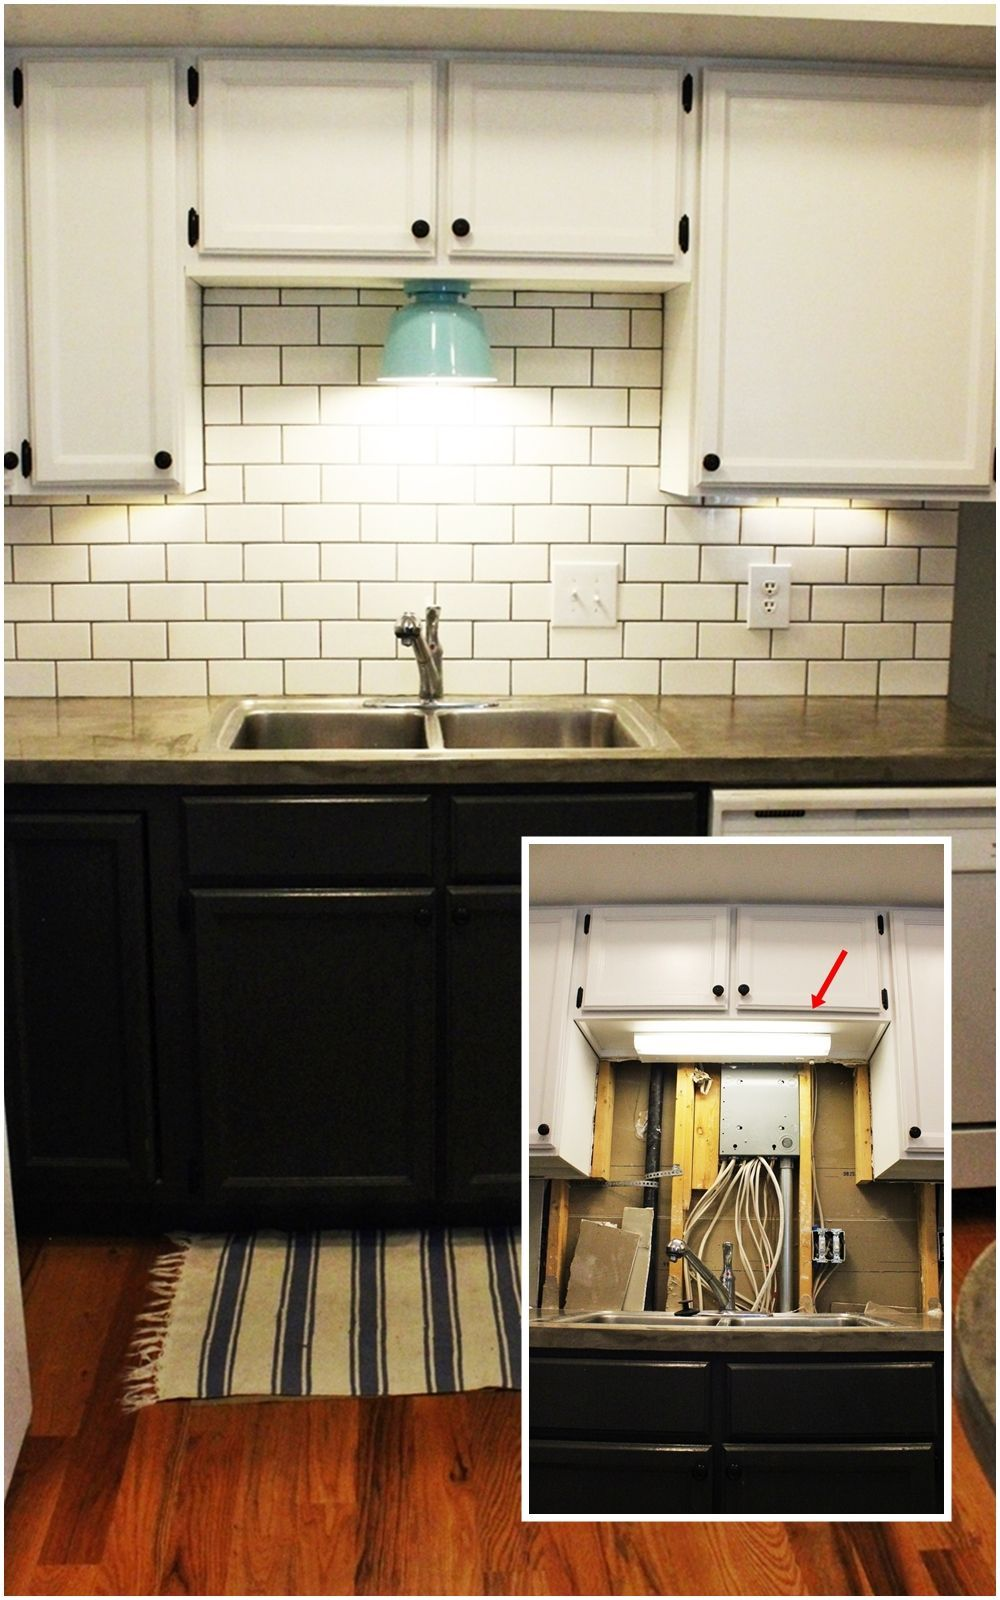 Diy kitchen lighting upgrade led under cabinet lights above the diy kitchen lighting upgrade led under cabinet lights above the sink light aloadofball Images